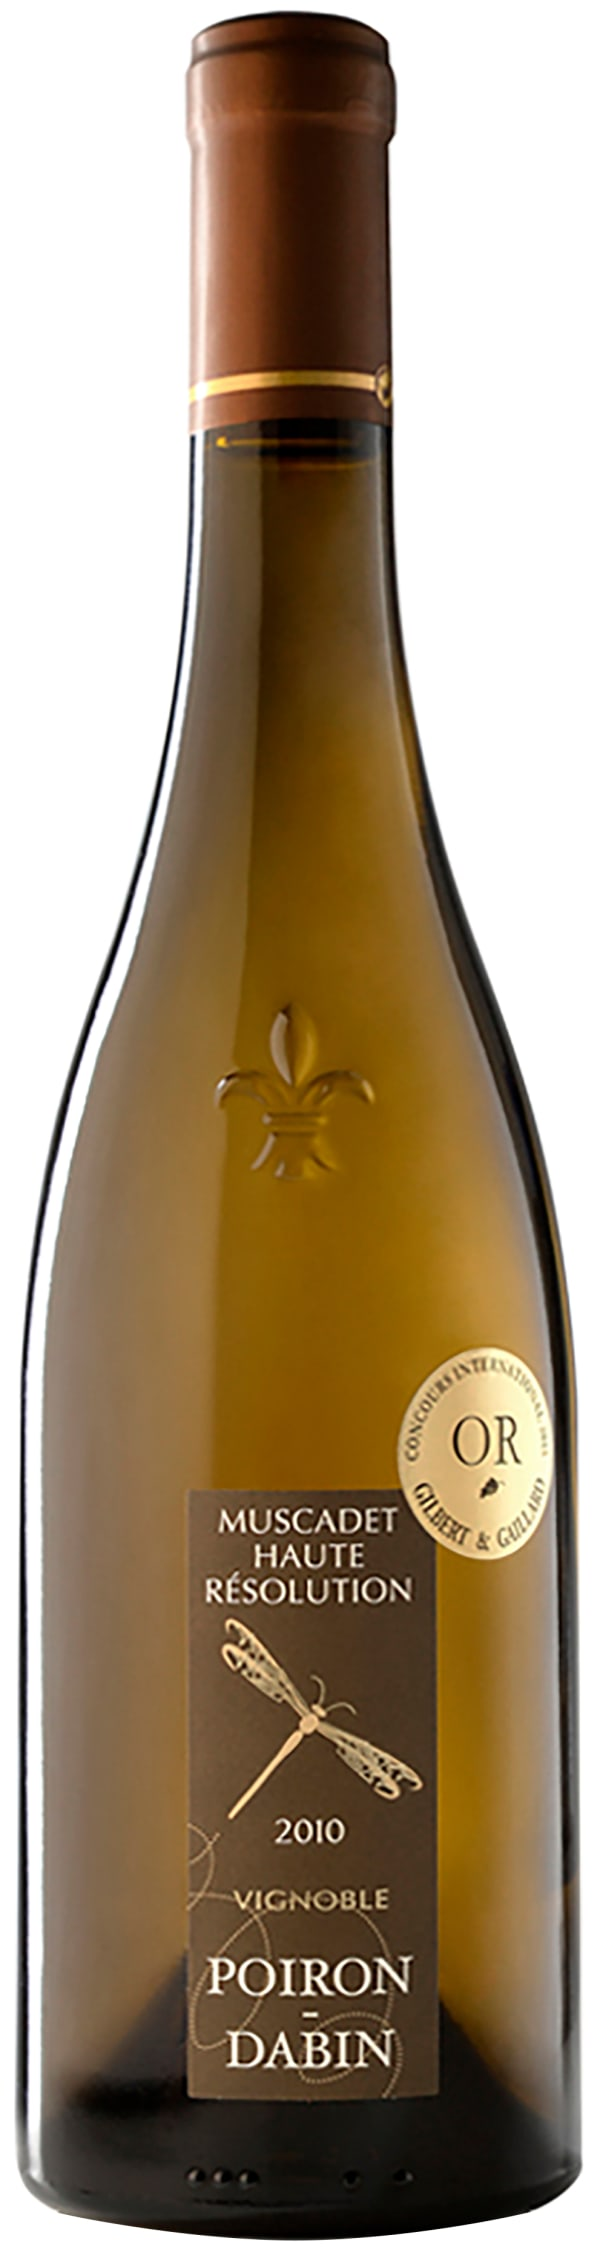 Haute Resolution Muscadet 2013